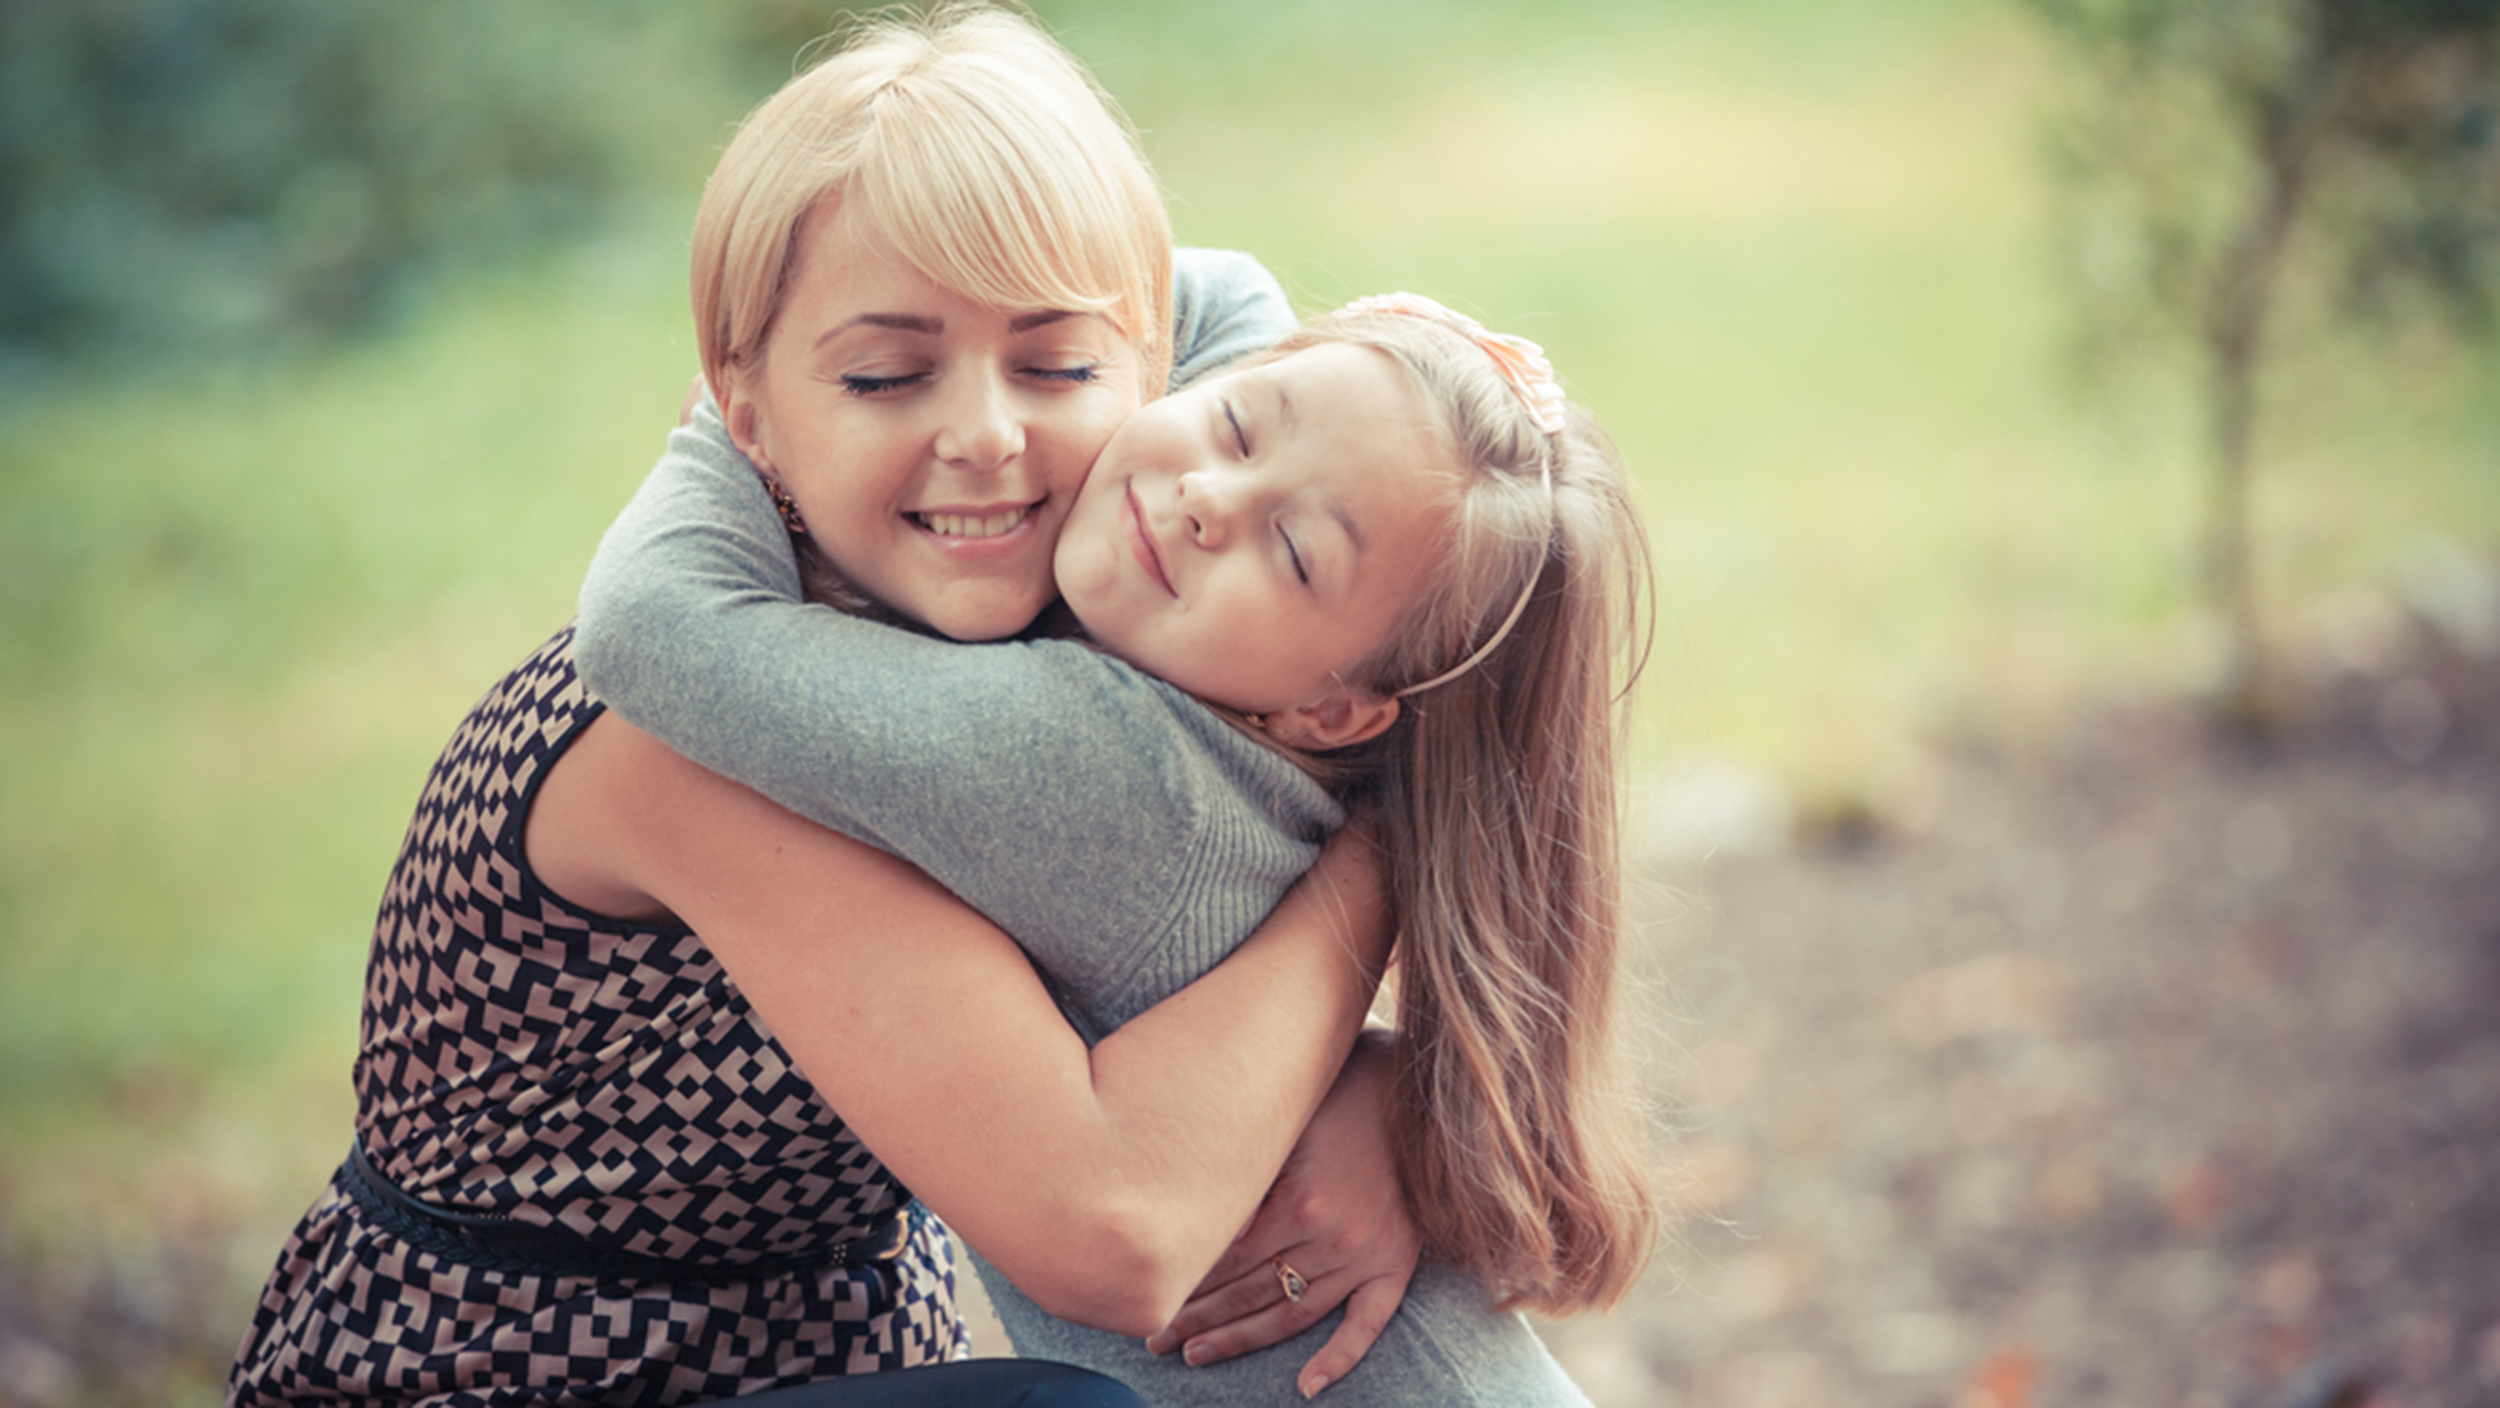 Truly thankful: 5 tips to teach kids real gratitude